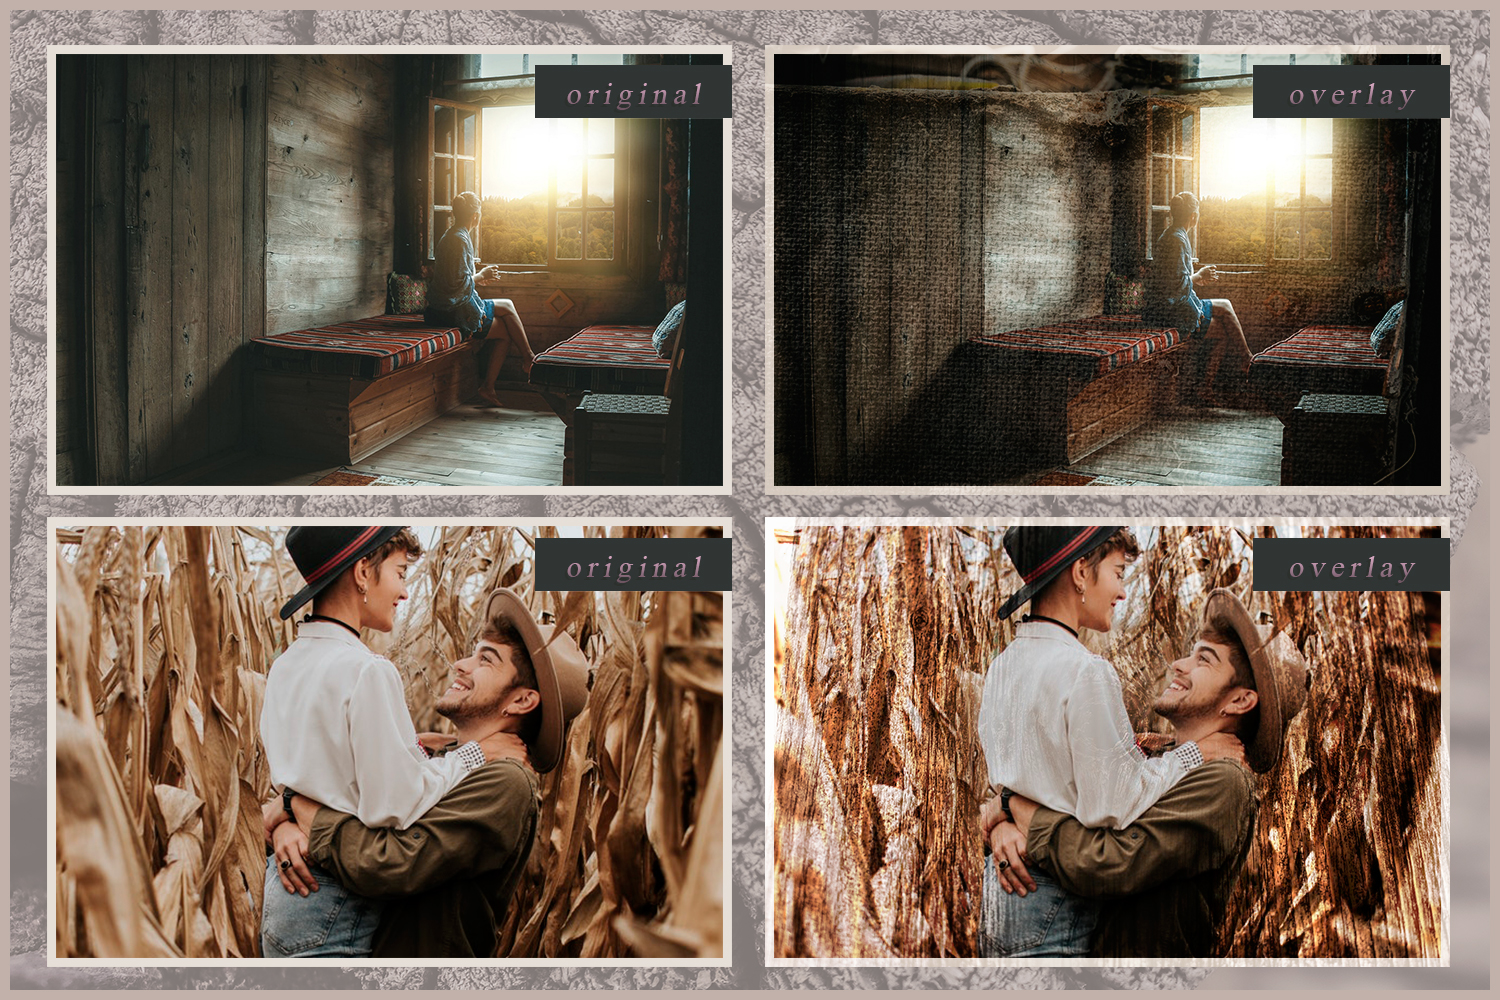 83 rustic woods photo textures pack overlays backgrounds example image 3